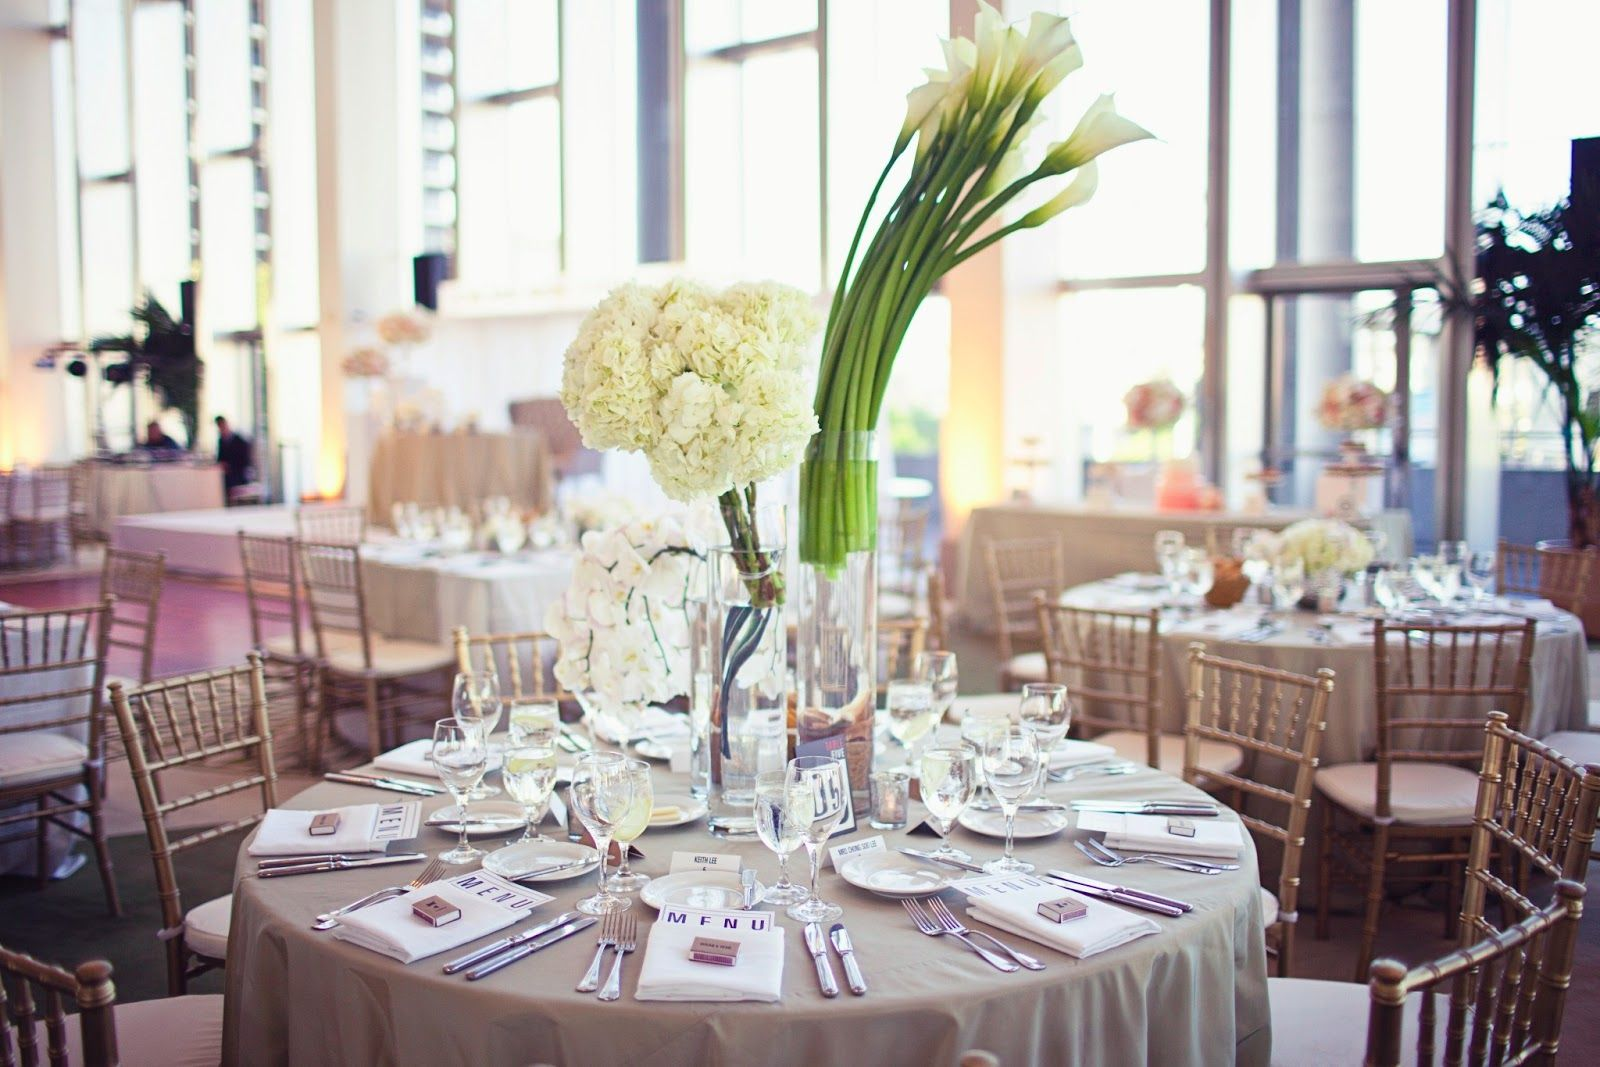 Planning and design by So Happi Together. Photography by Amelia Lyon Photography.  Floral arrangements by Floral Elements. Rentals by Chiavari Chair Rentals. Linens by La Tavola Linens.